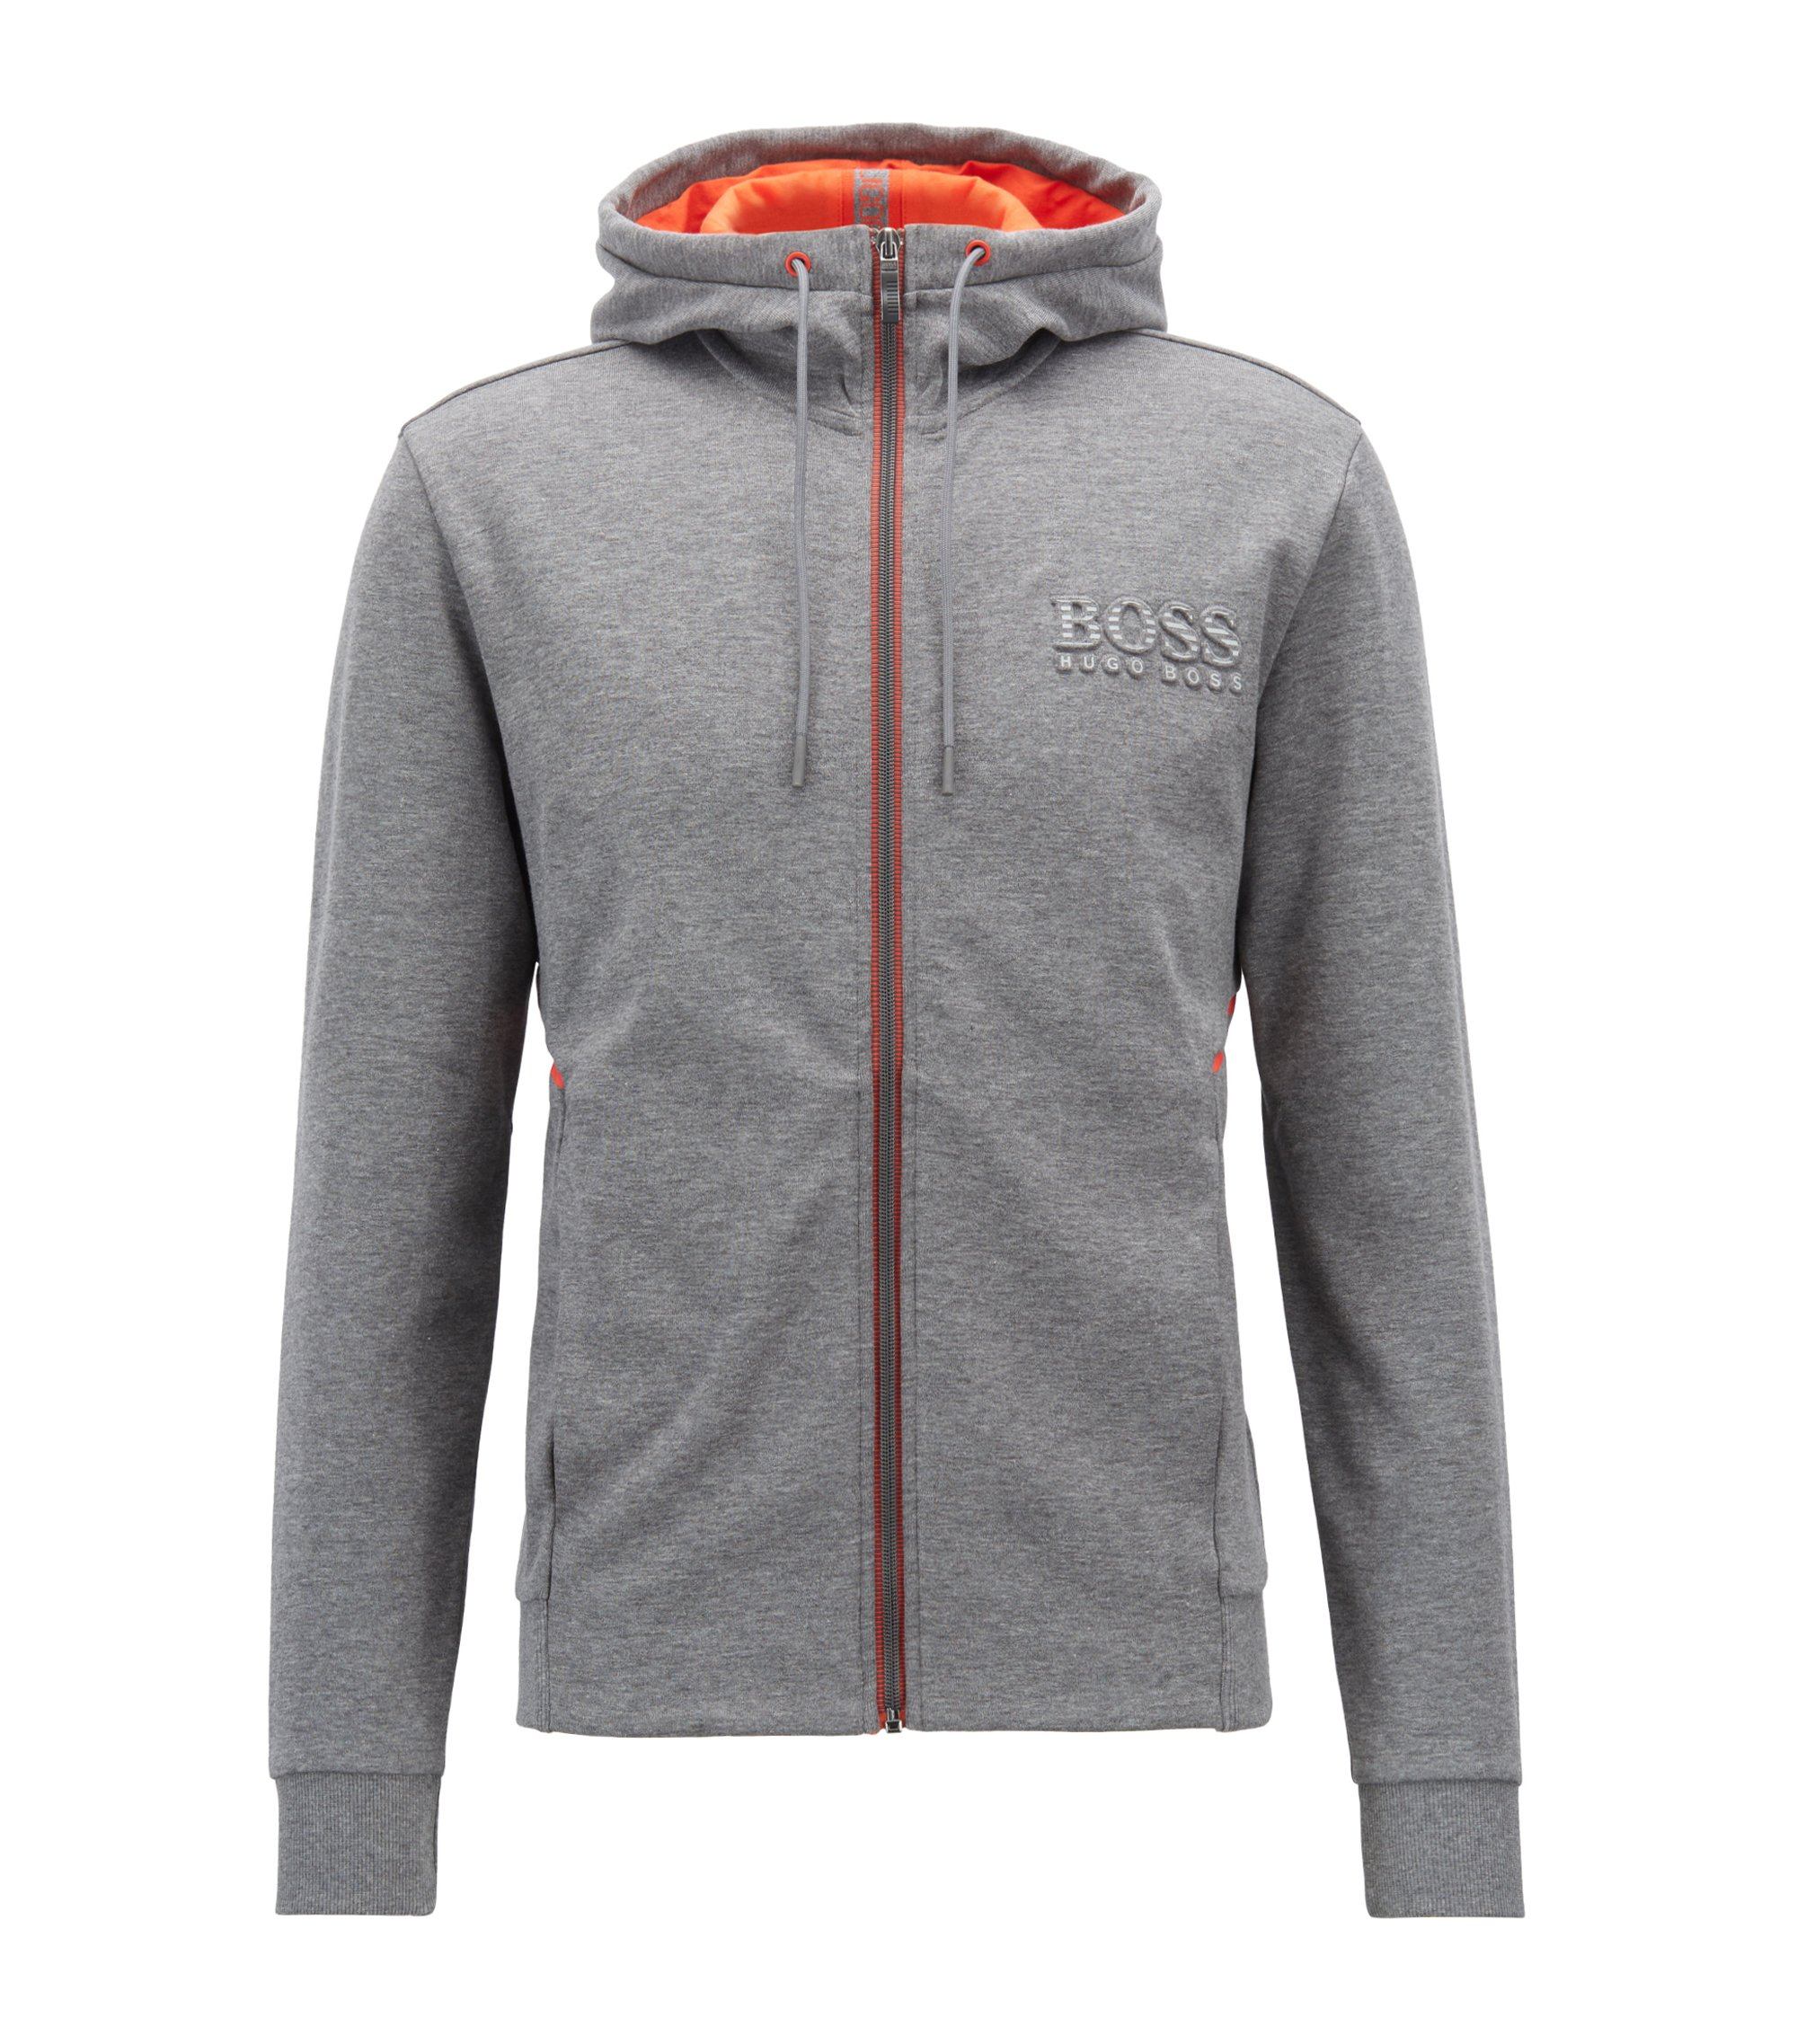 Hooded sweatshirt with logo and reflective detailing, Grau